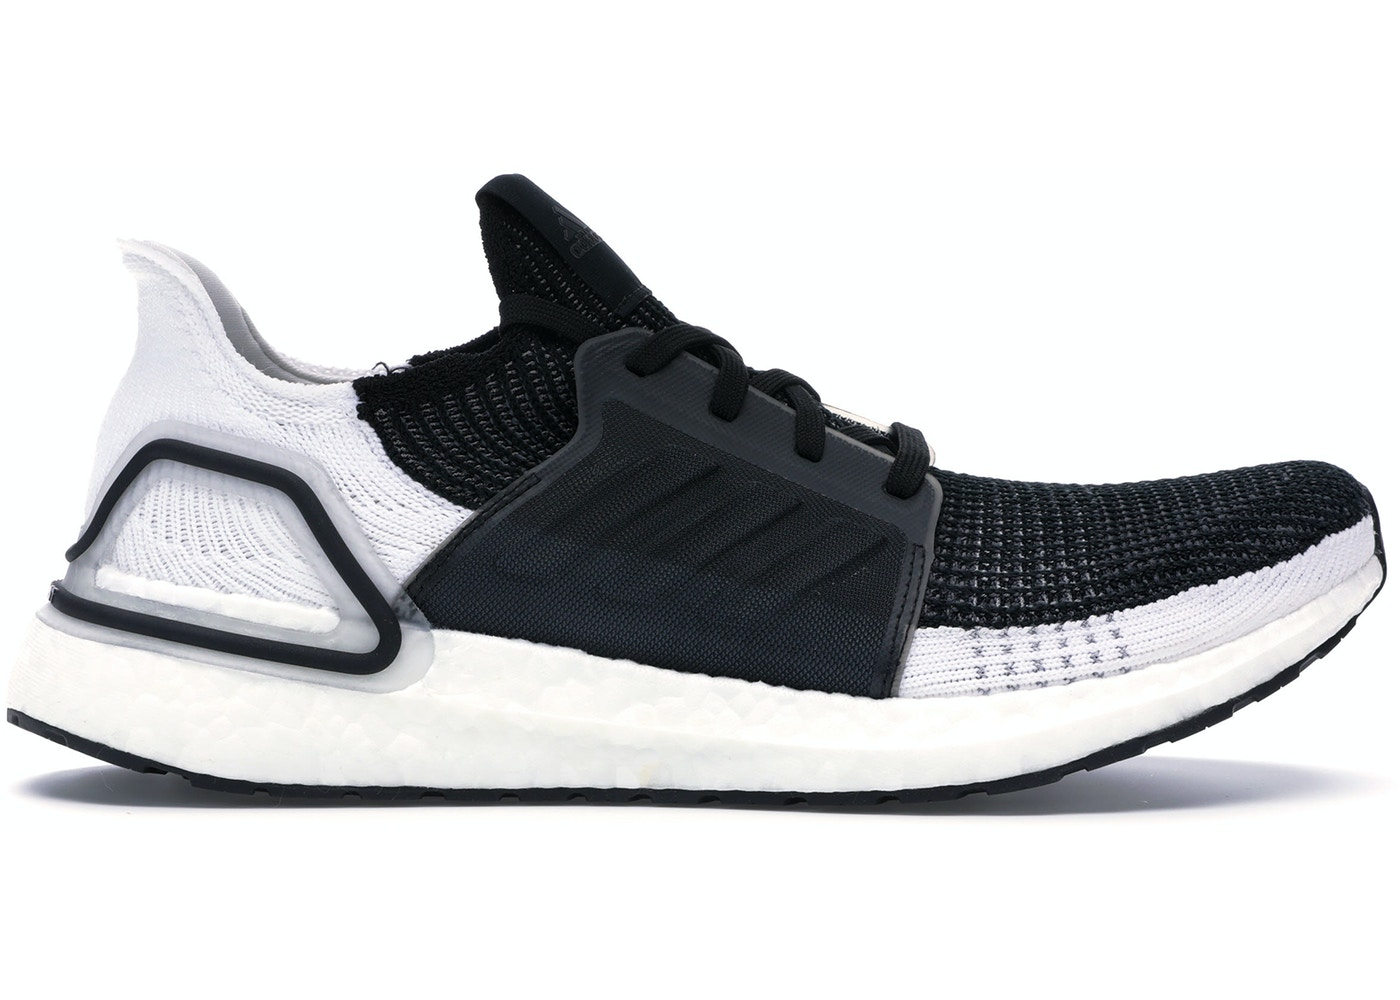 official photos 223f3 9a8bc Buy adidas Ultra Boost Shoes   Deadstock Sneakers